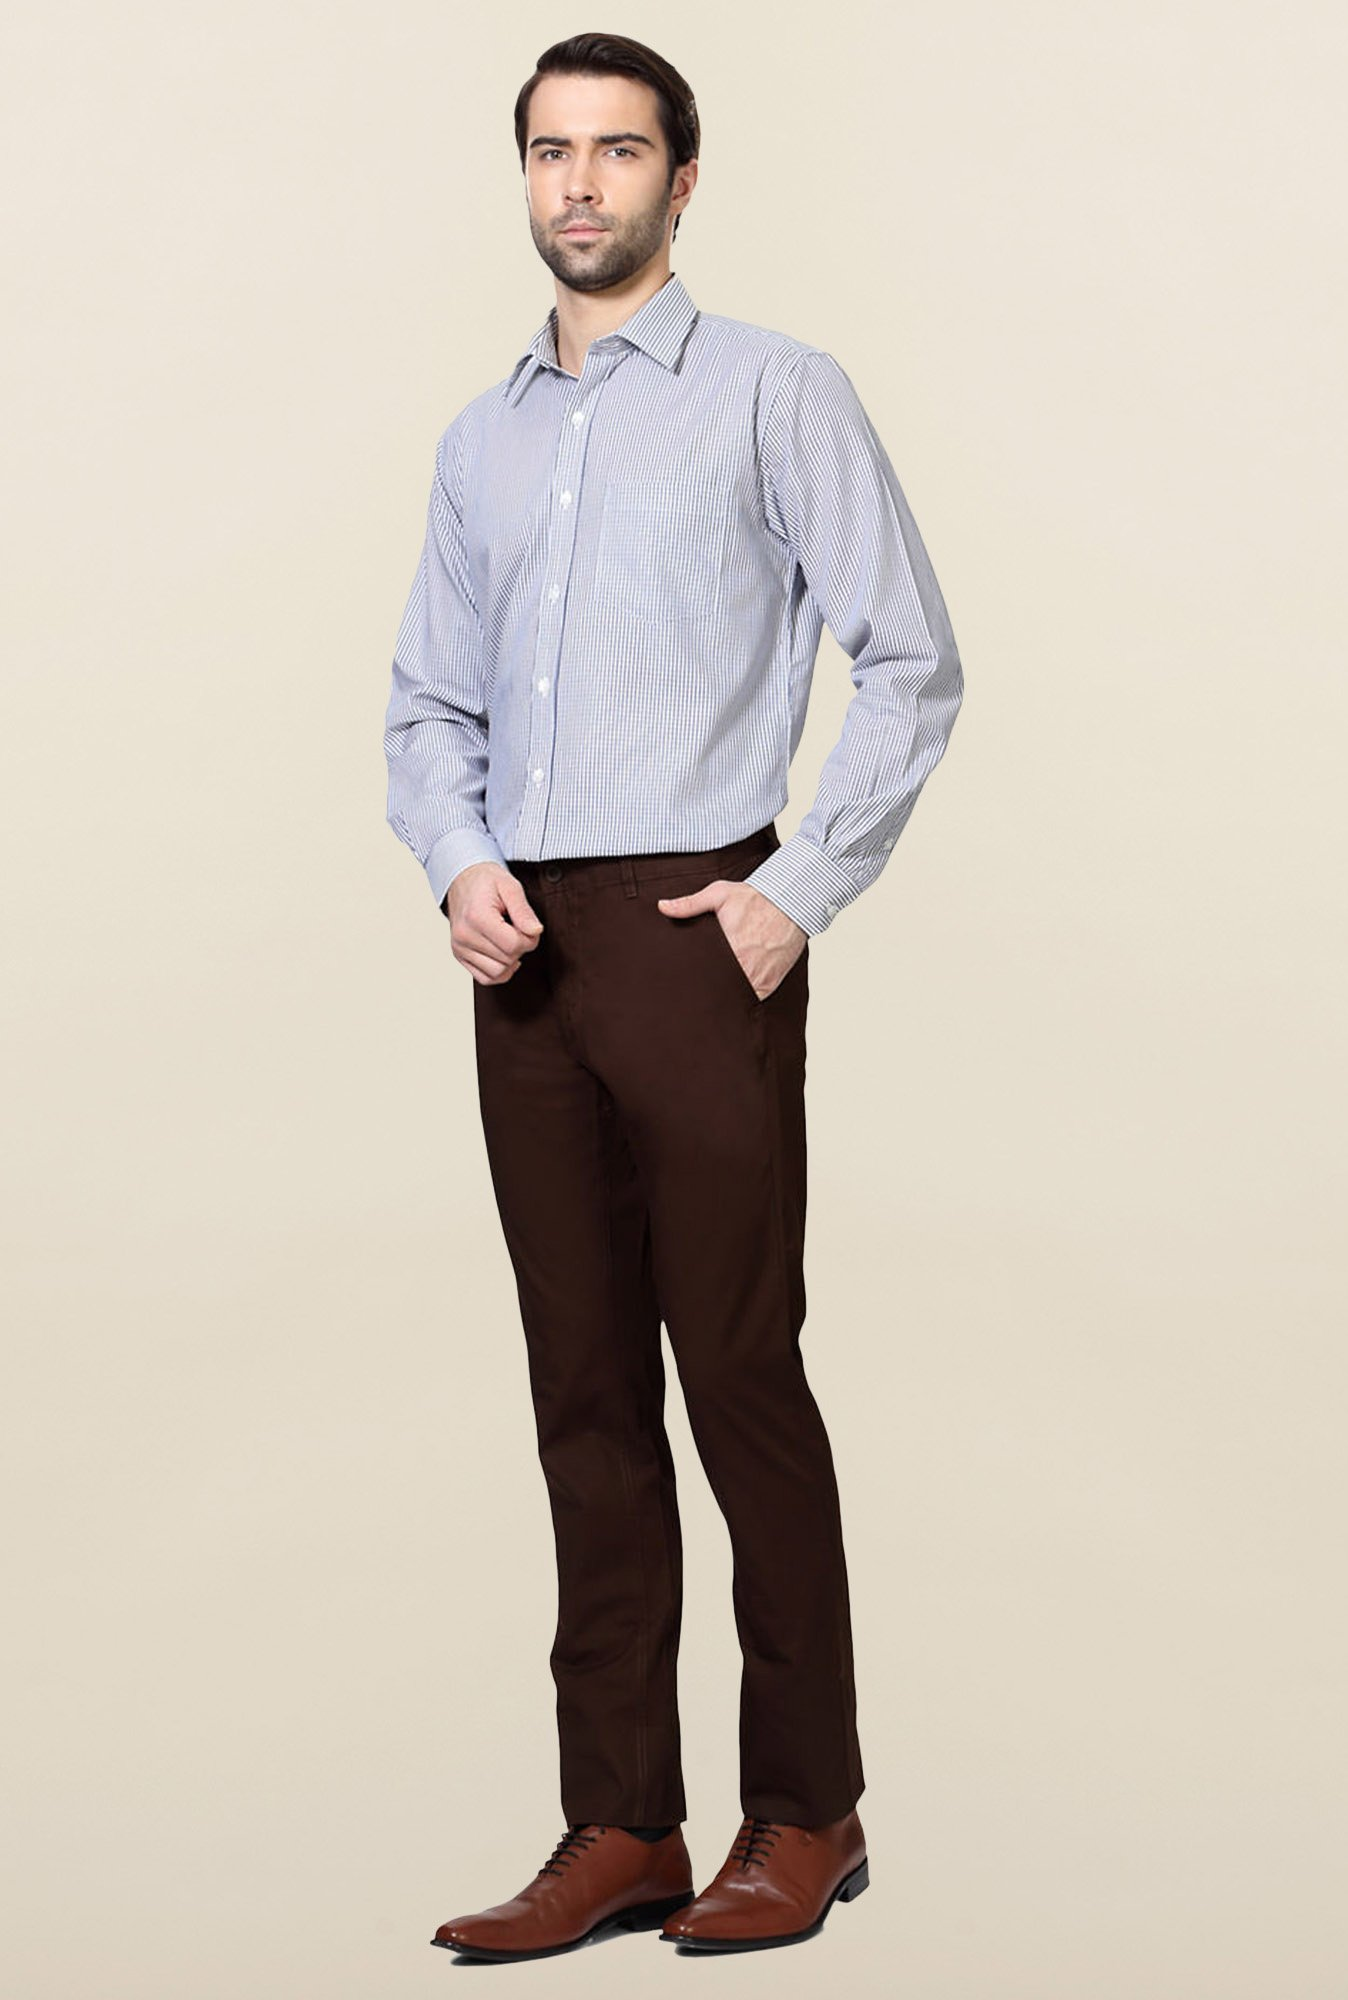 Allen Solly Brown Solid Cotton Trouser